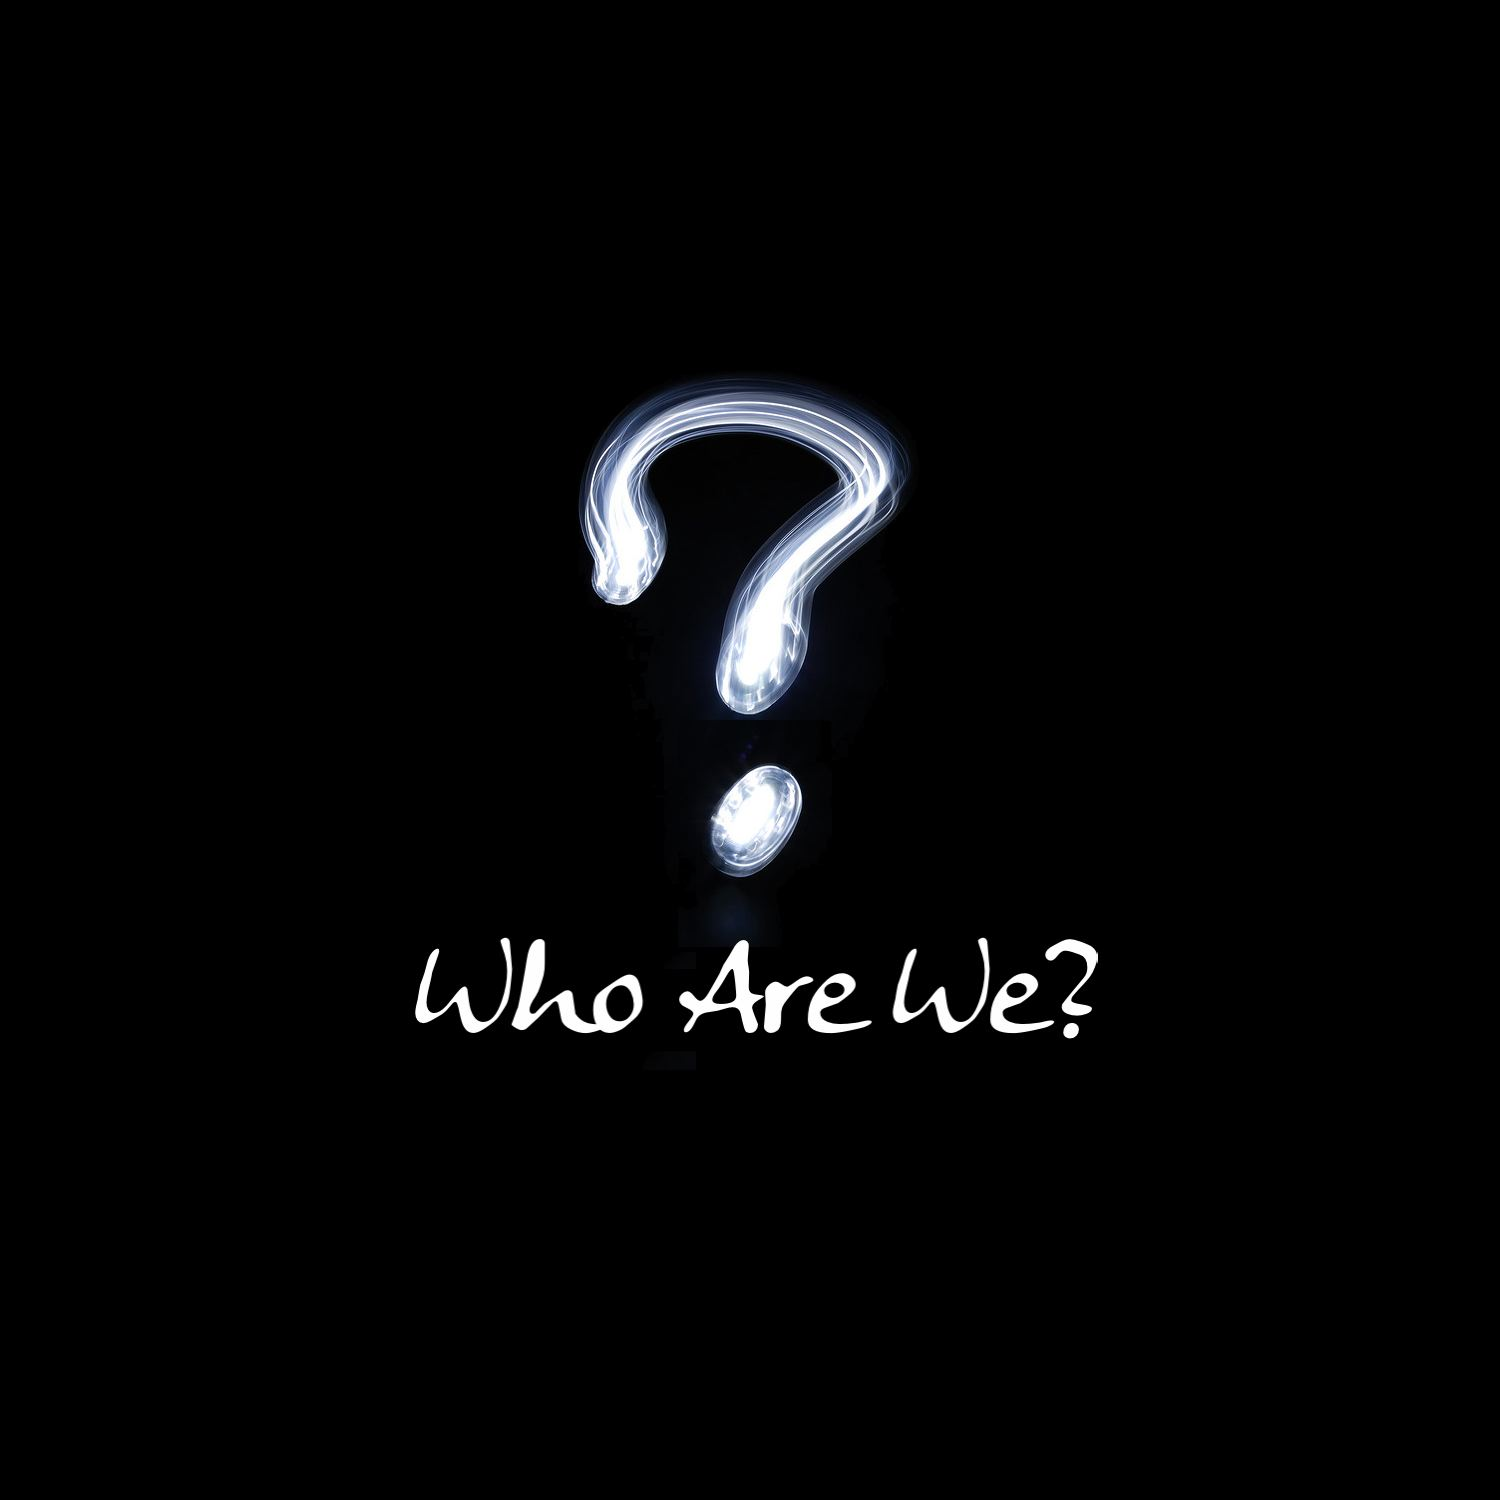 6-1-14 Who Are We? A People Who Release His Kingdom